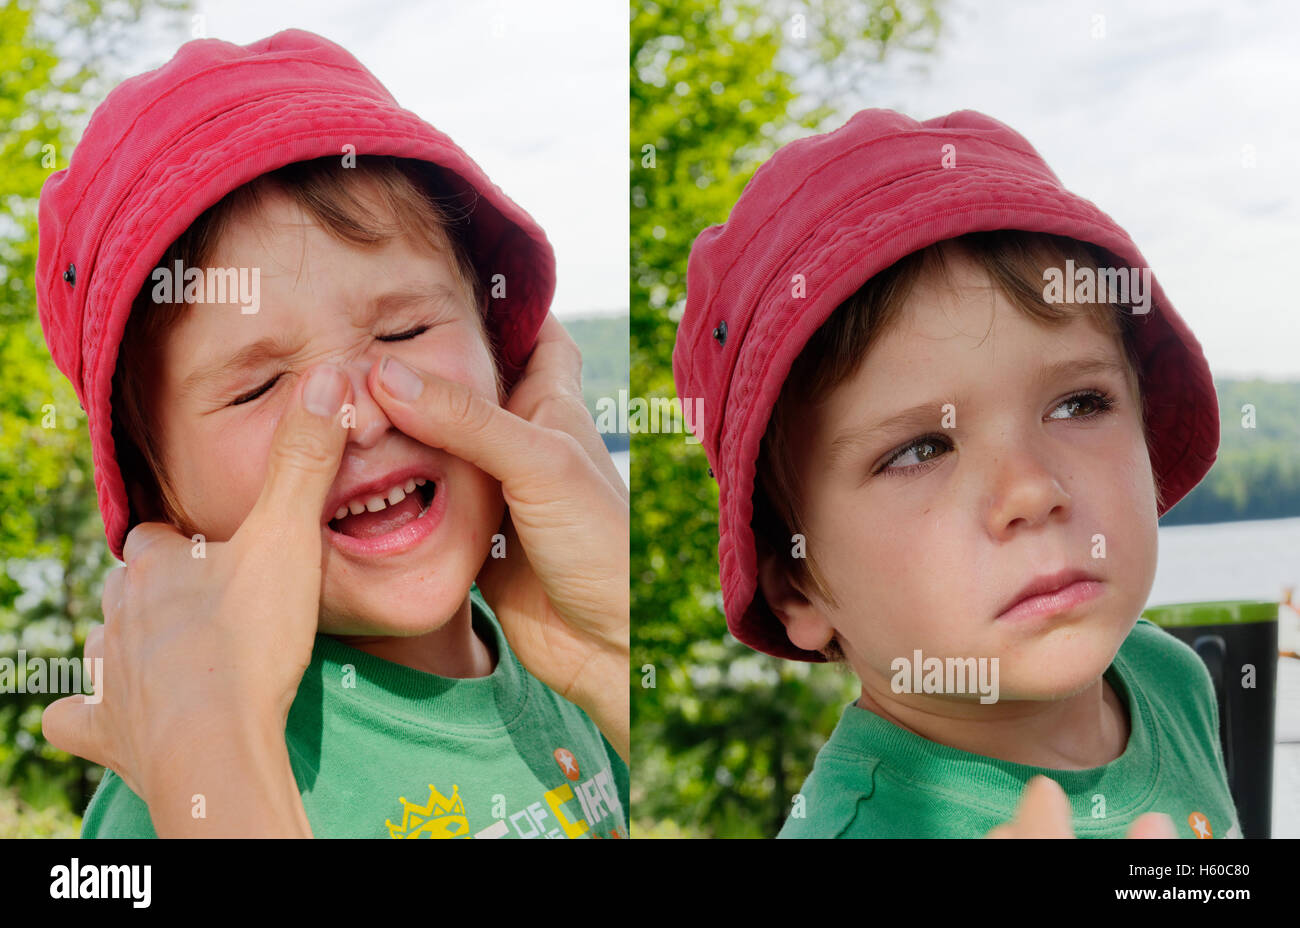 A double image of a young boy (4 yrs old) having suncream rubbed into his face and giving his mum a dirty look after - Stock Image